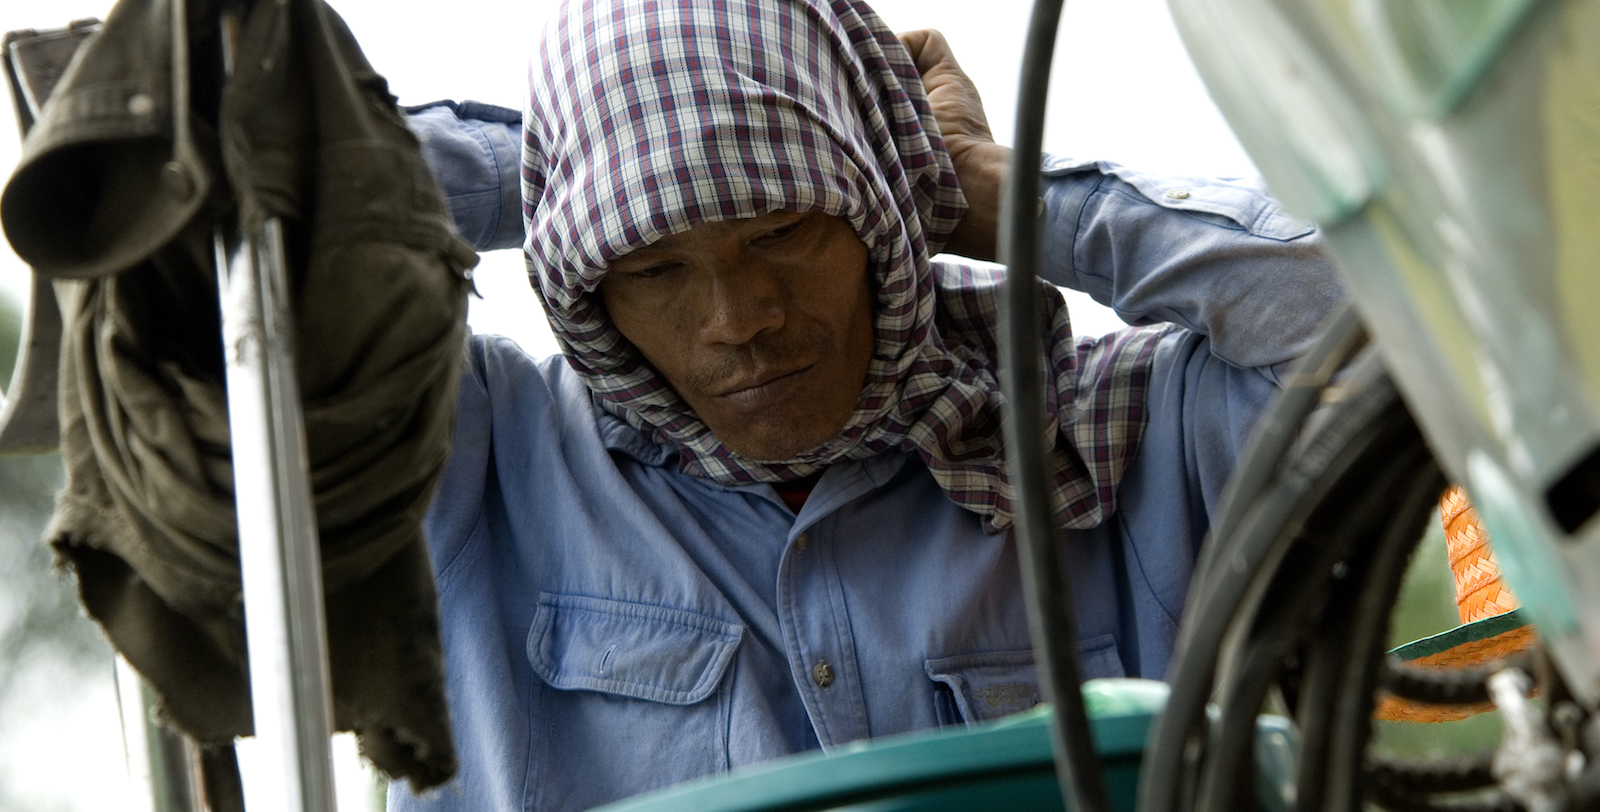 A migrant worker puts on a scarf before harvesting rice (Photo: ILO/ Flickr)